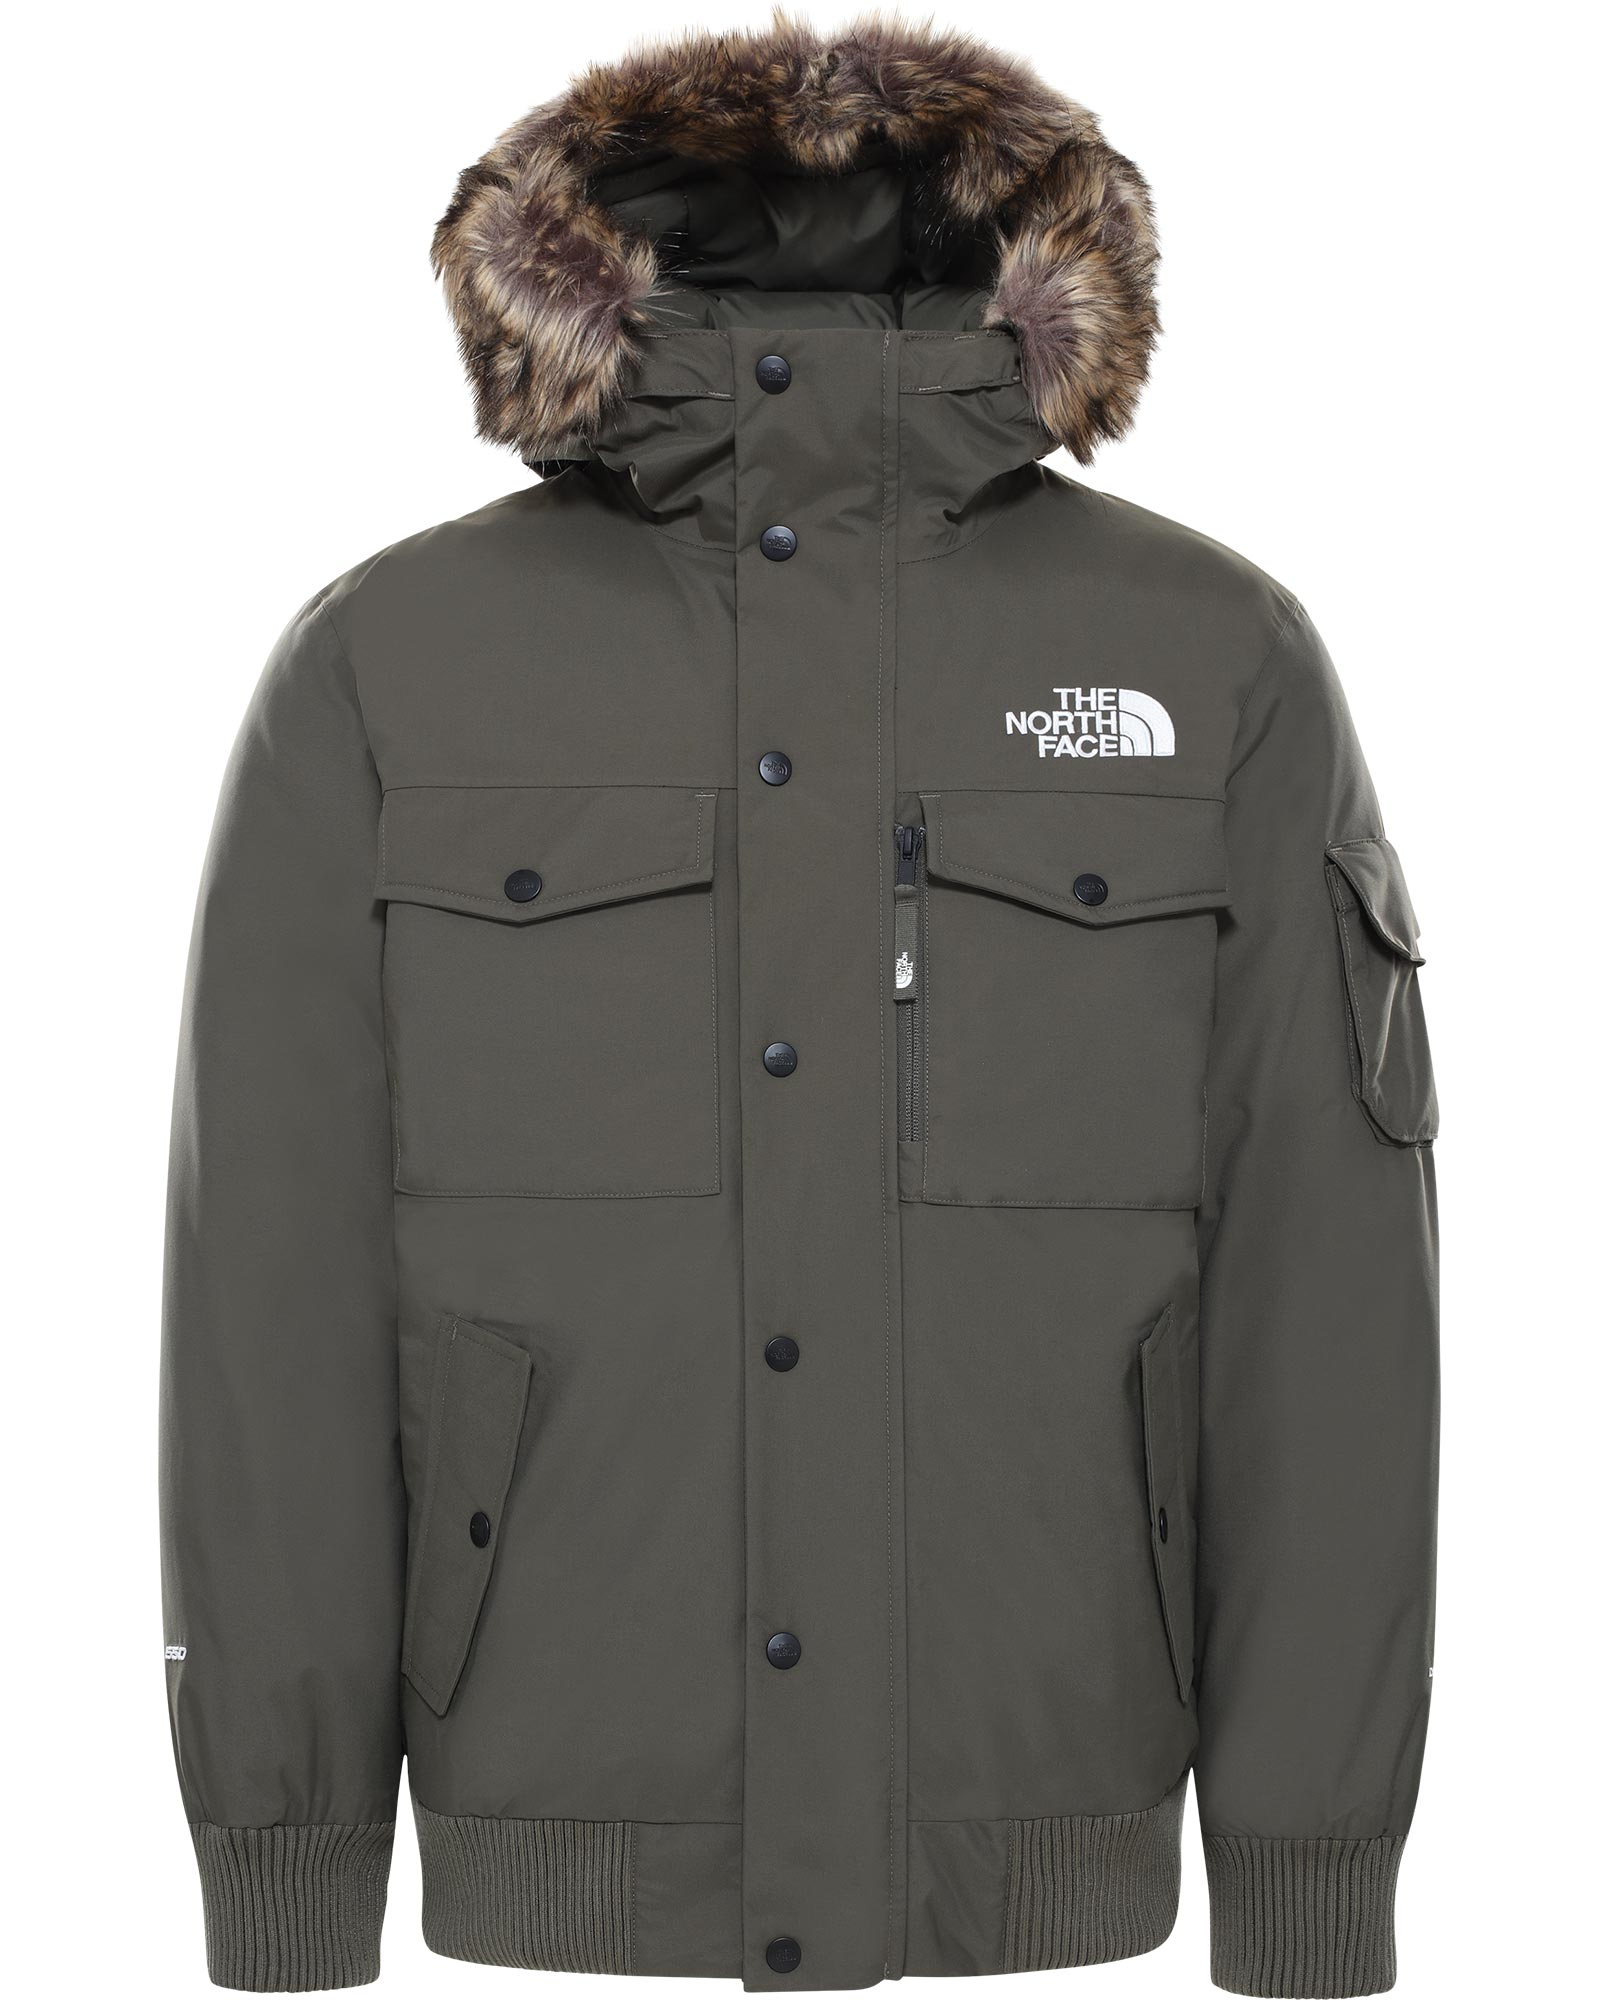 The North Face Men's Gotham Jacket 0